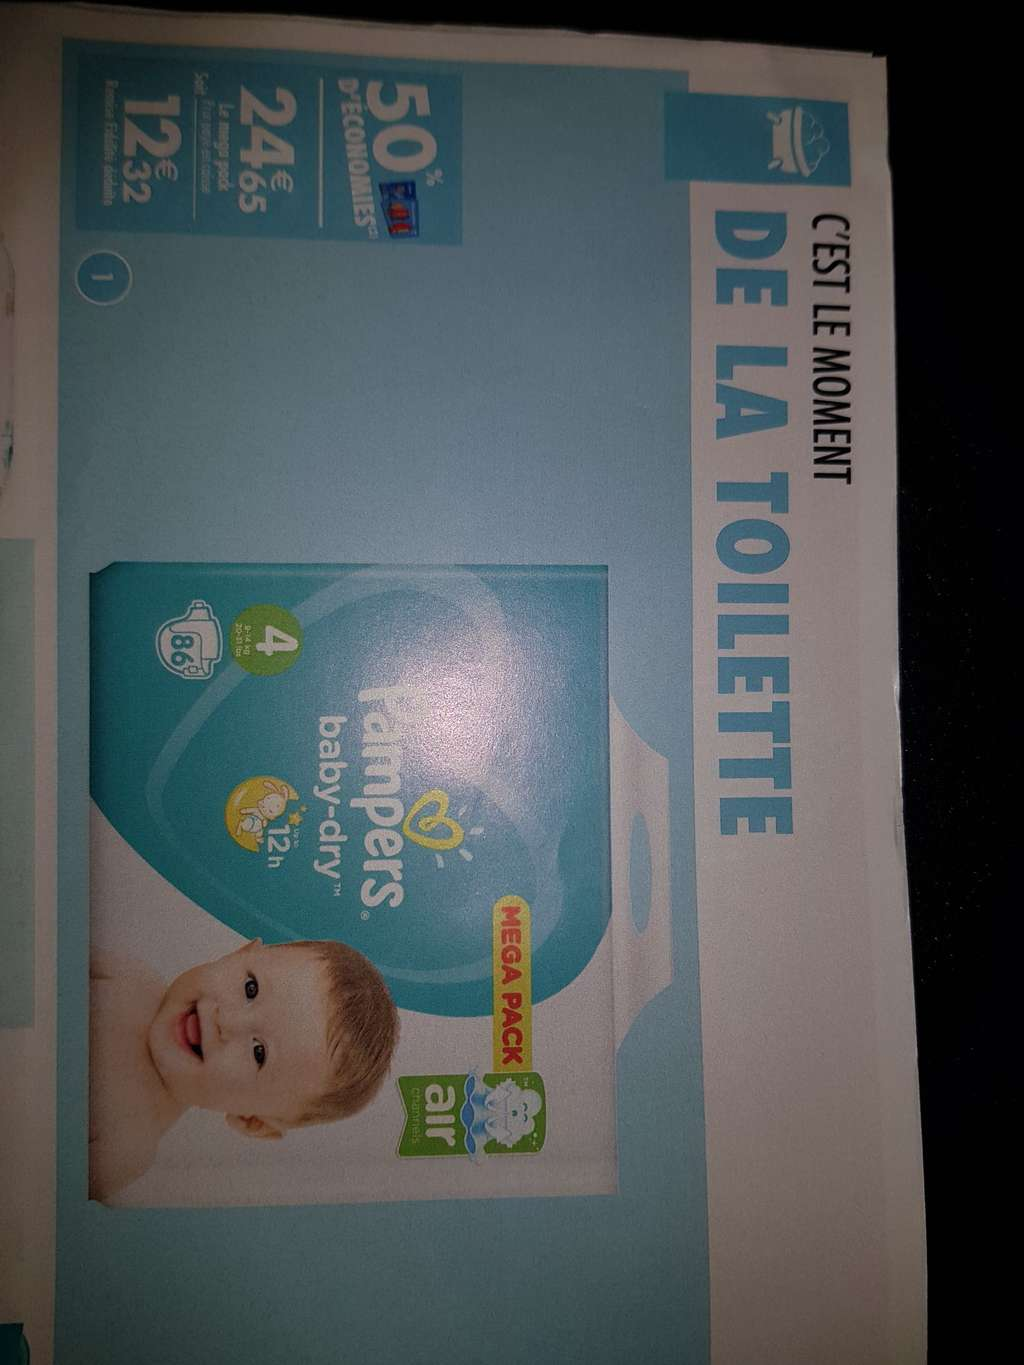 Pack de 86 couches pampers taille 4 via fid lit carrefour - Carrefour couches pampers ...